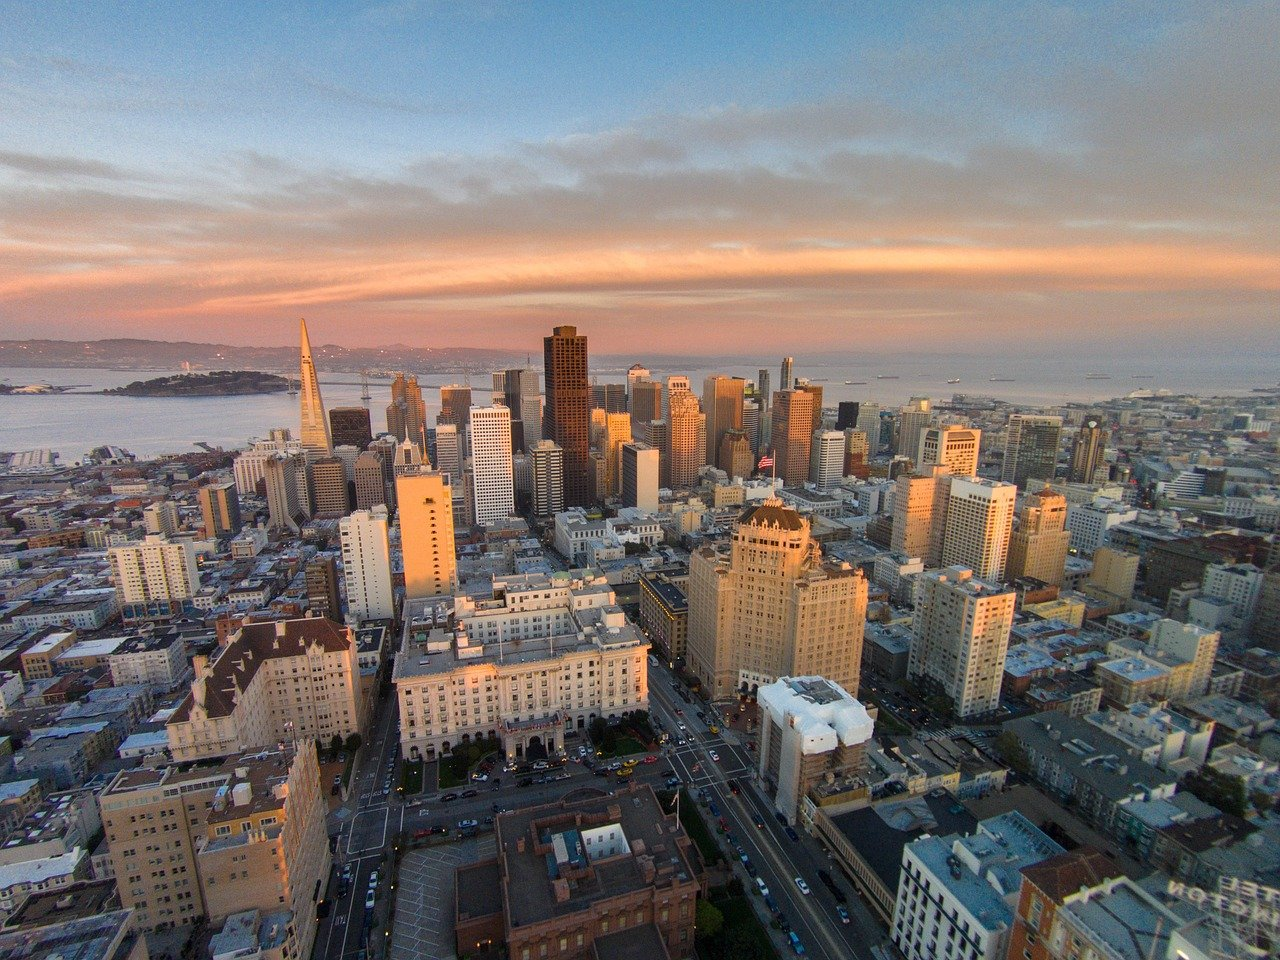 Sky line drone shot from San Francisco